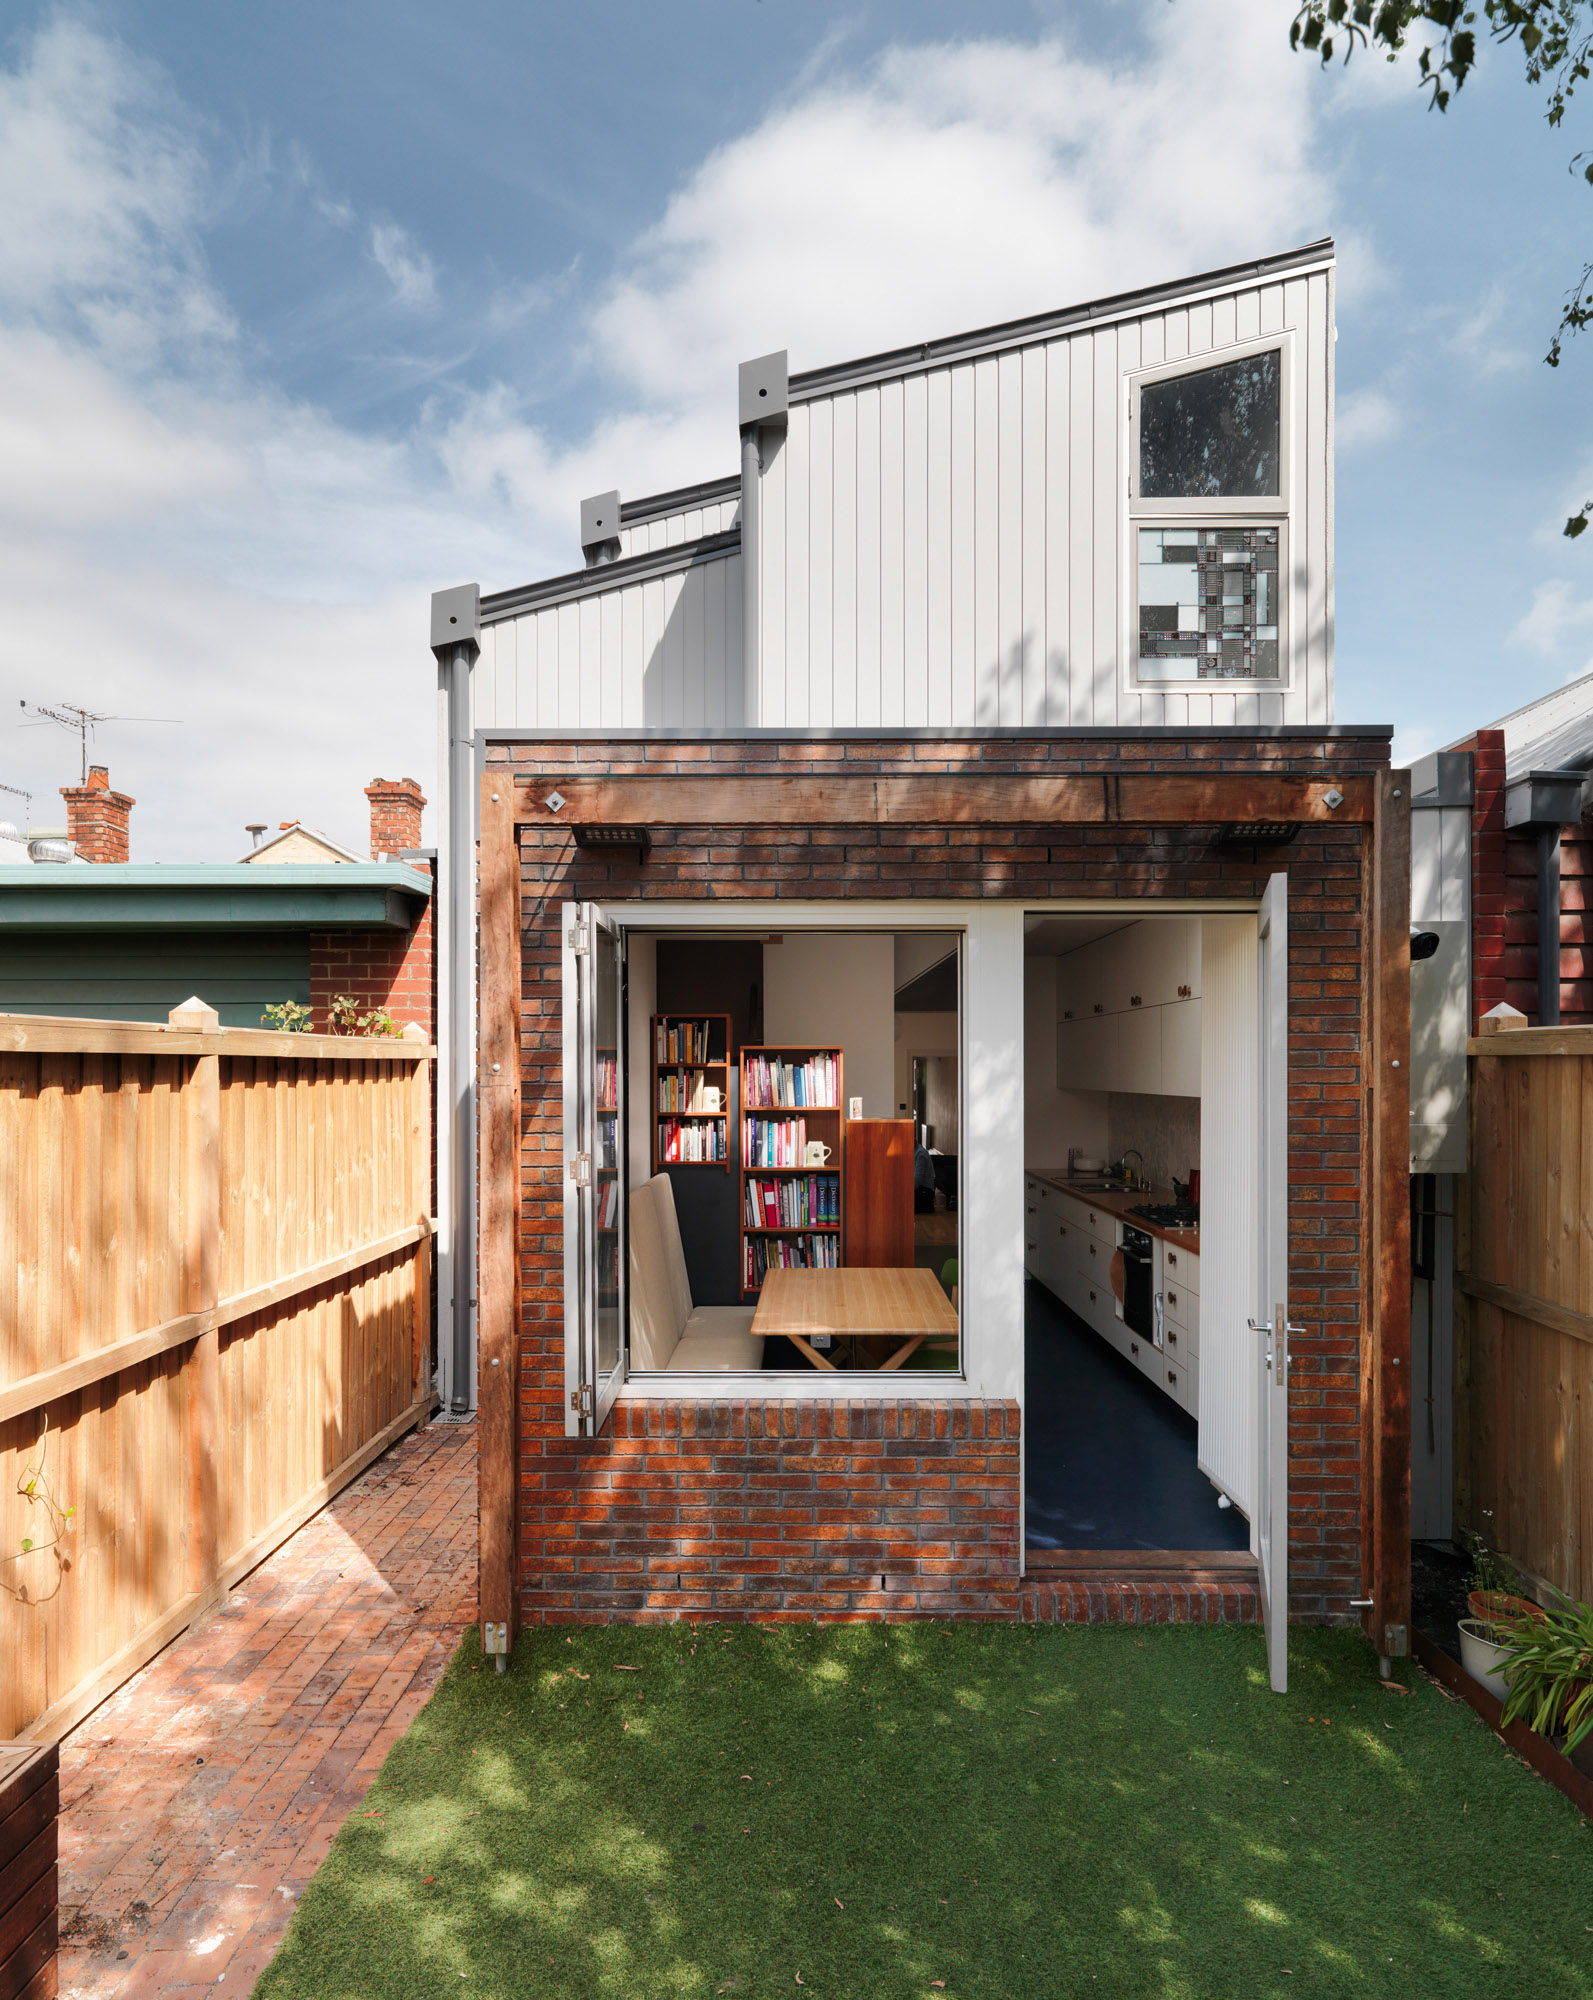 Live small terrace House extension, brick and timber cladding.